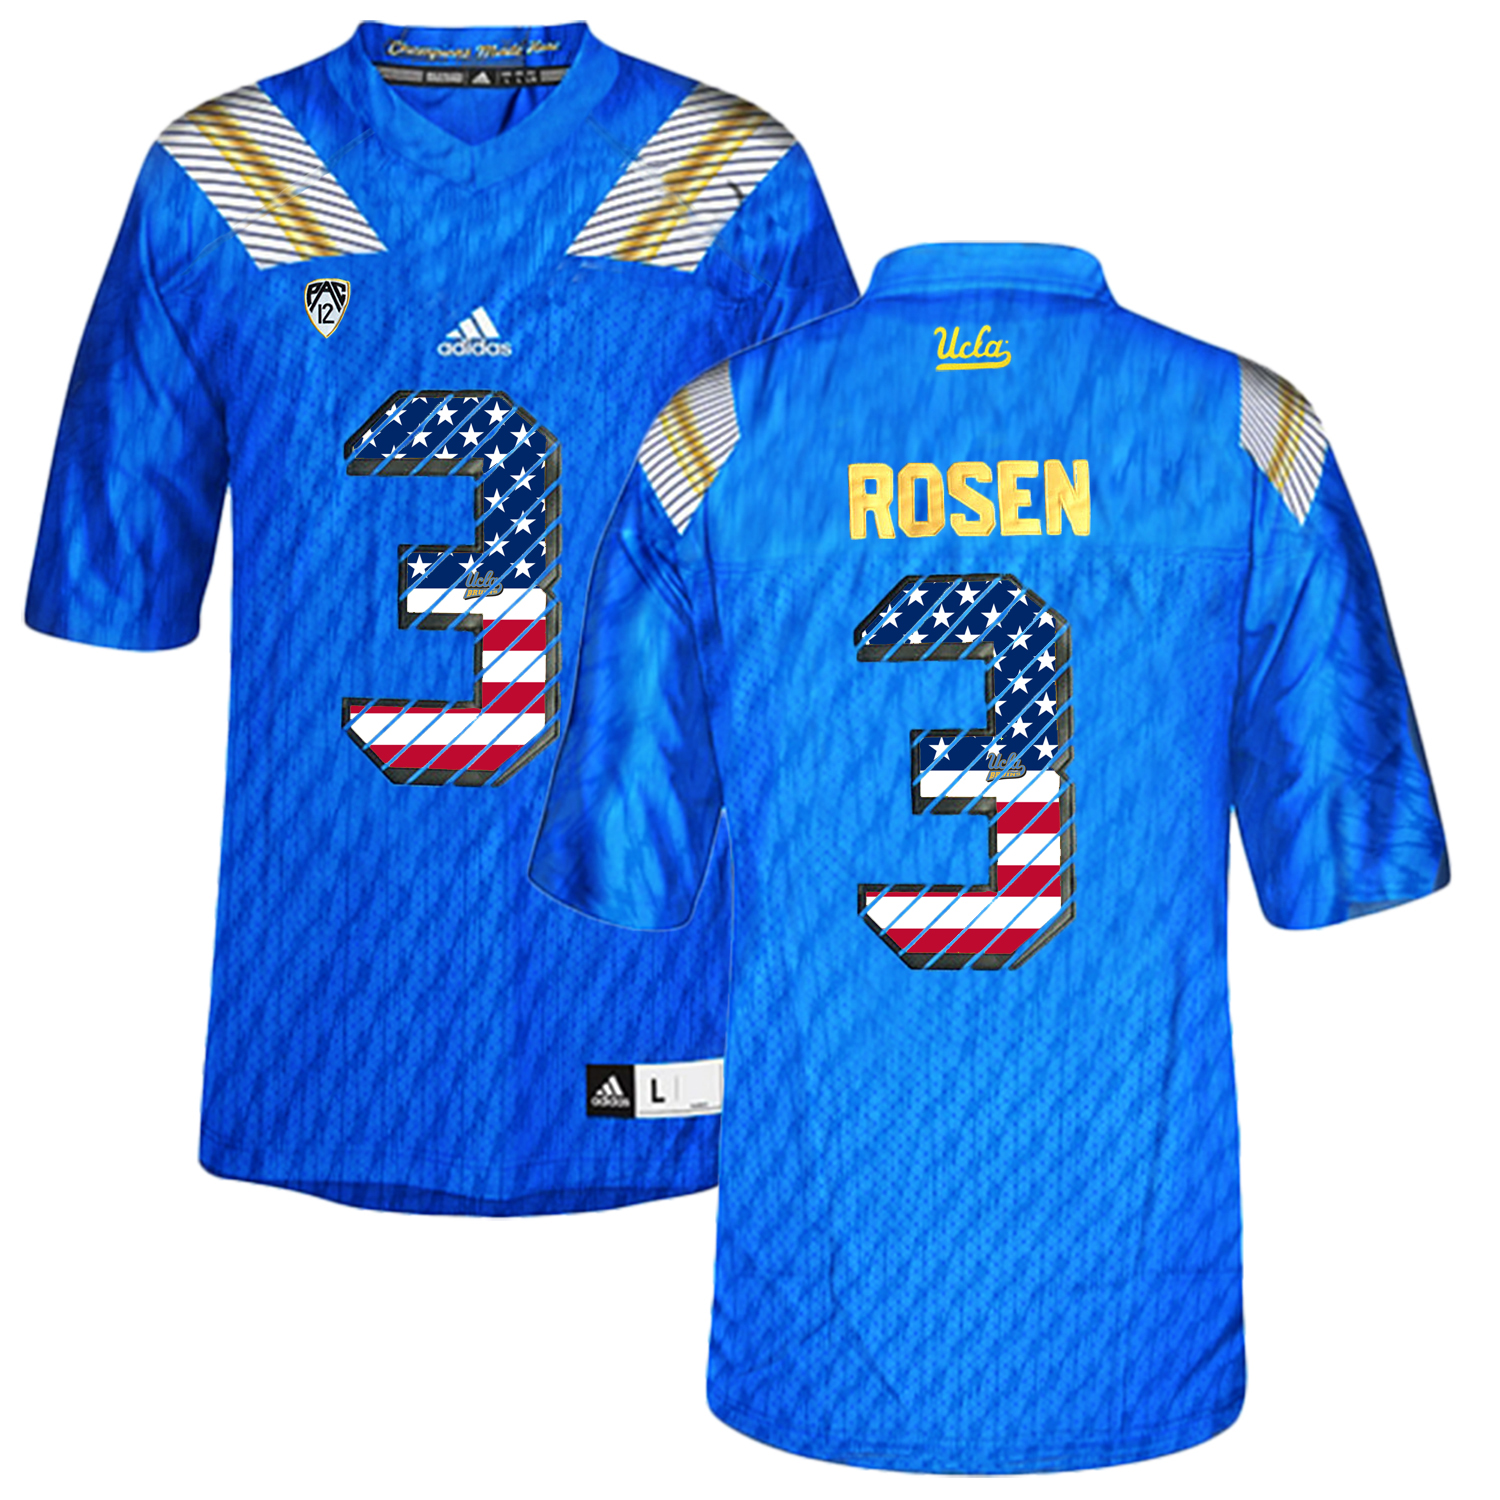 UCLA Bruins 3 Josh Rosen Blue College Football Authentic Jersey Blue